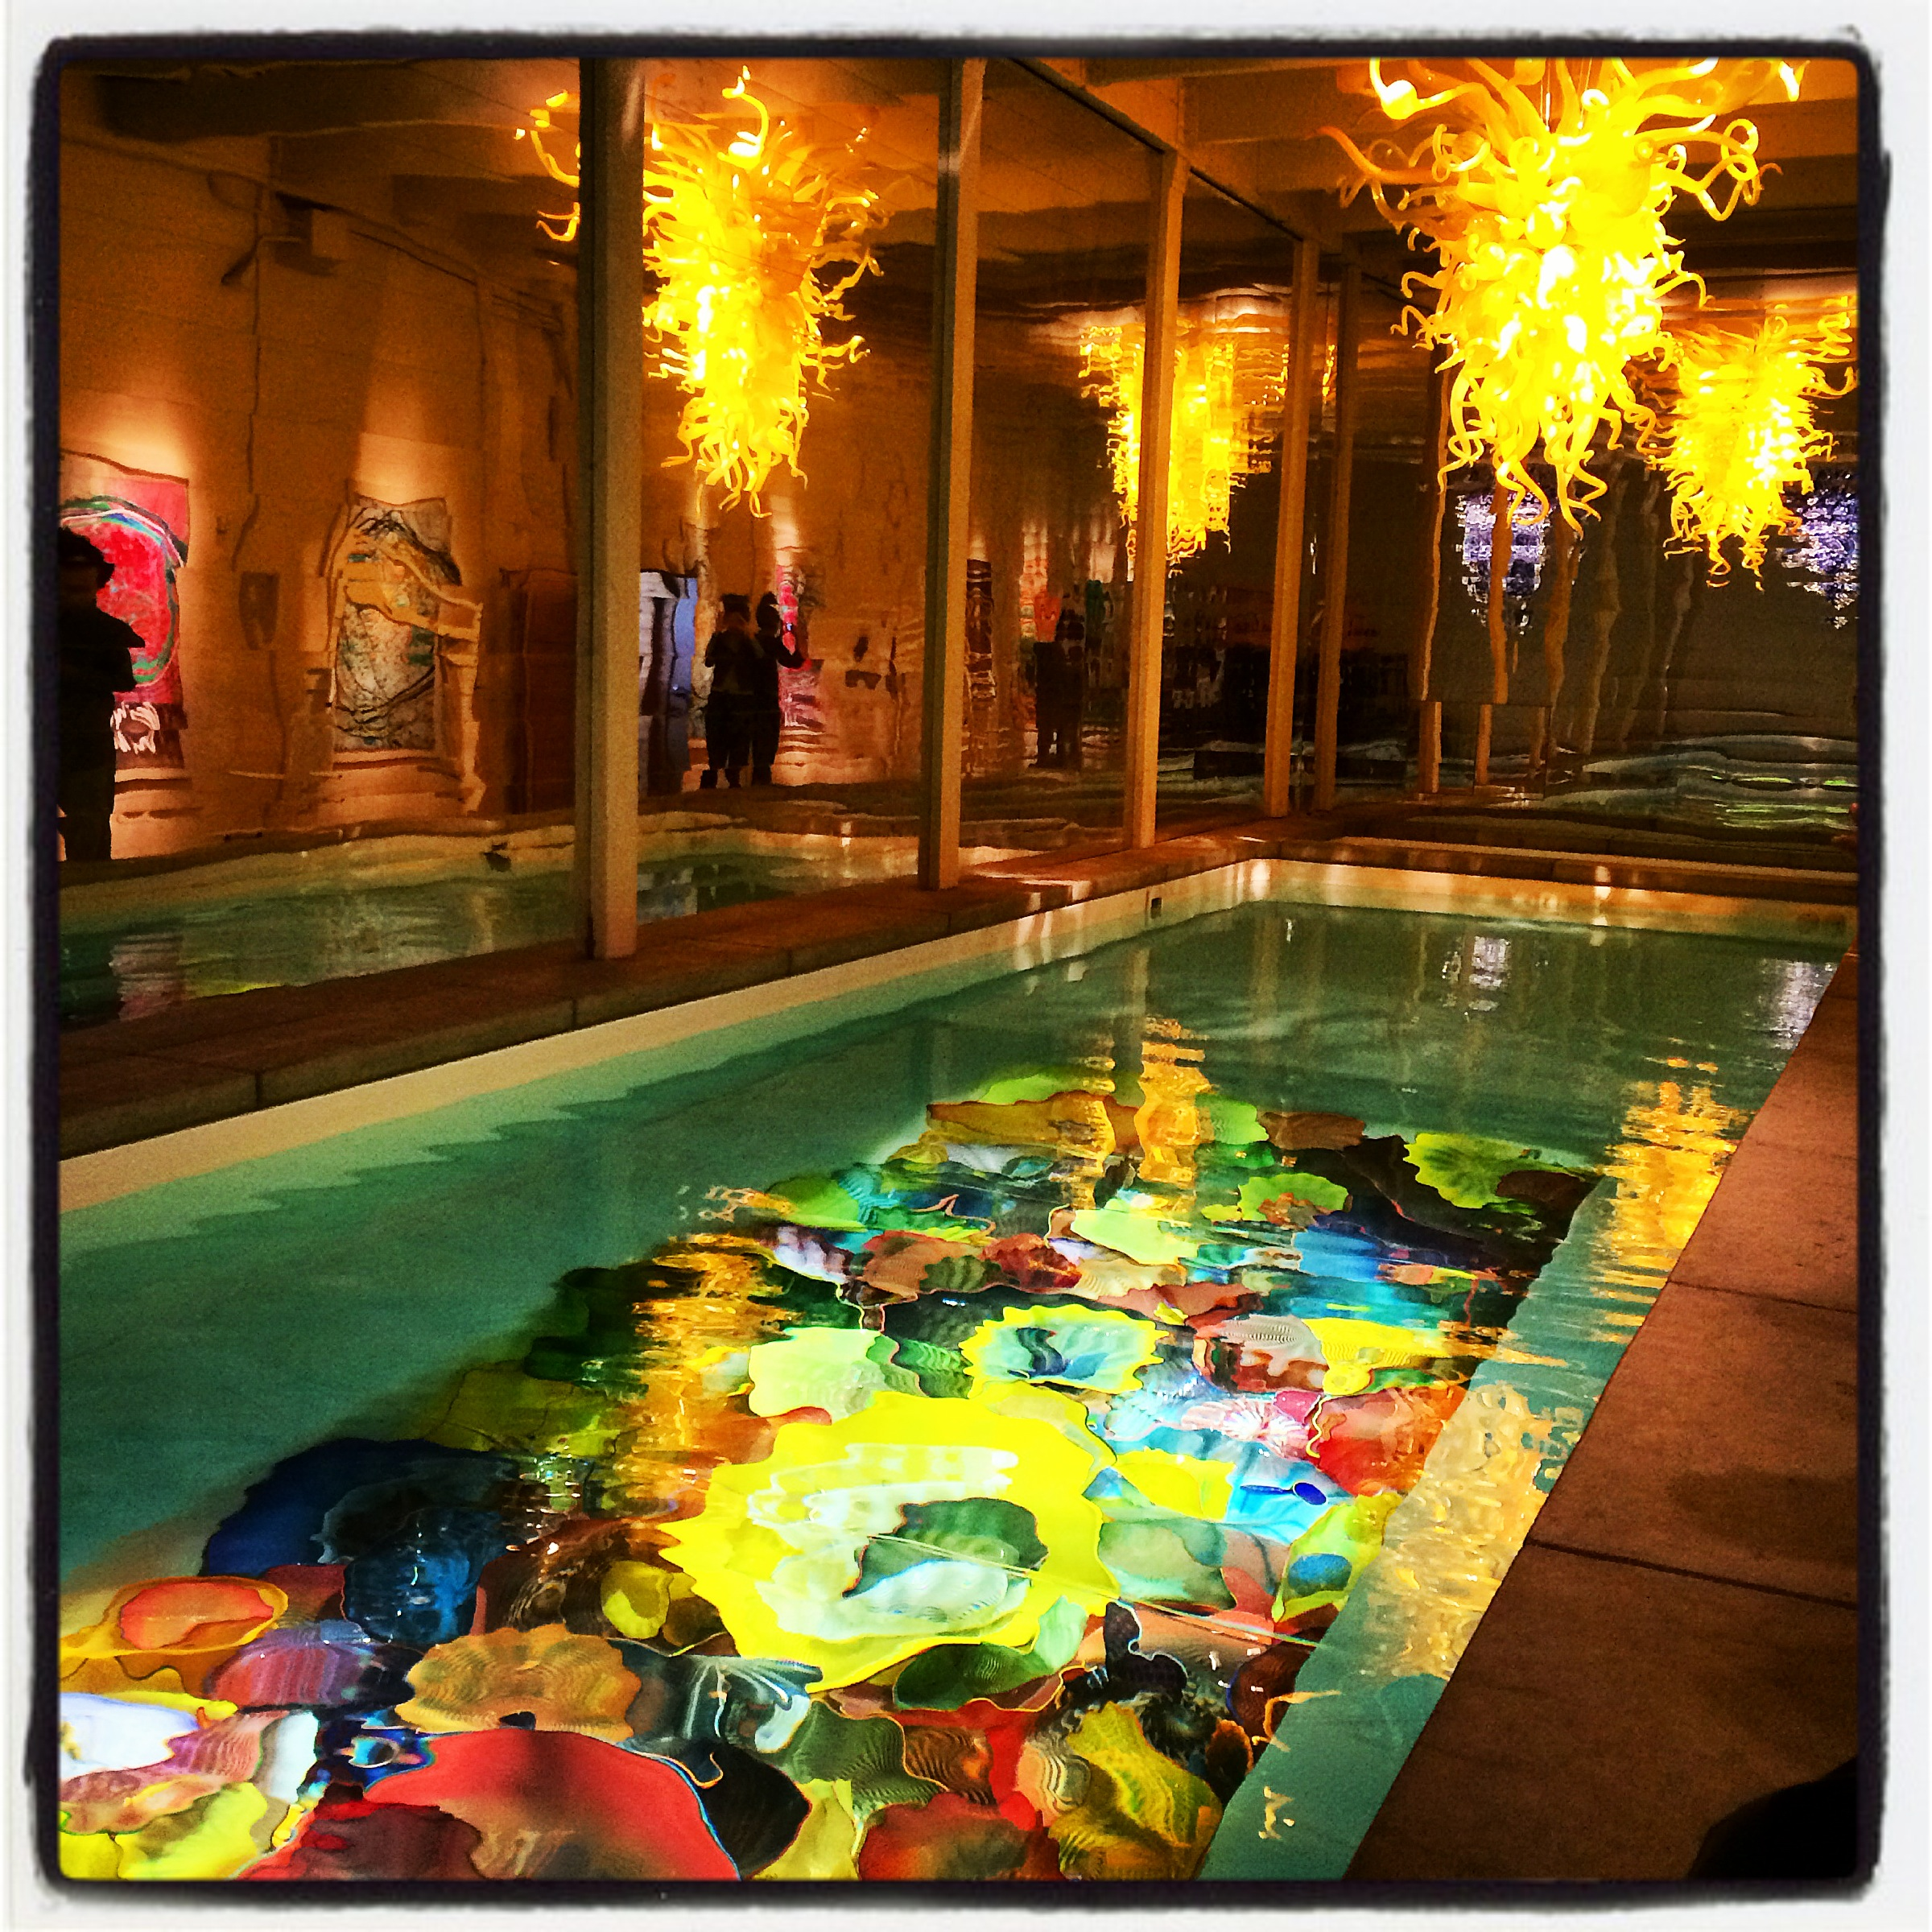 Chihuly Lap Pool at Boathouse